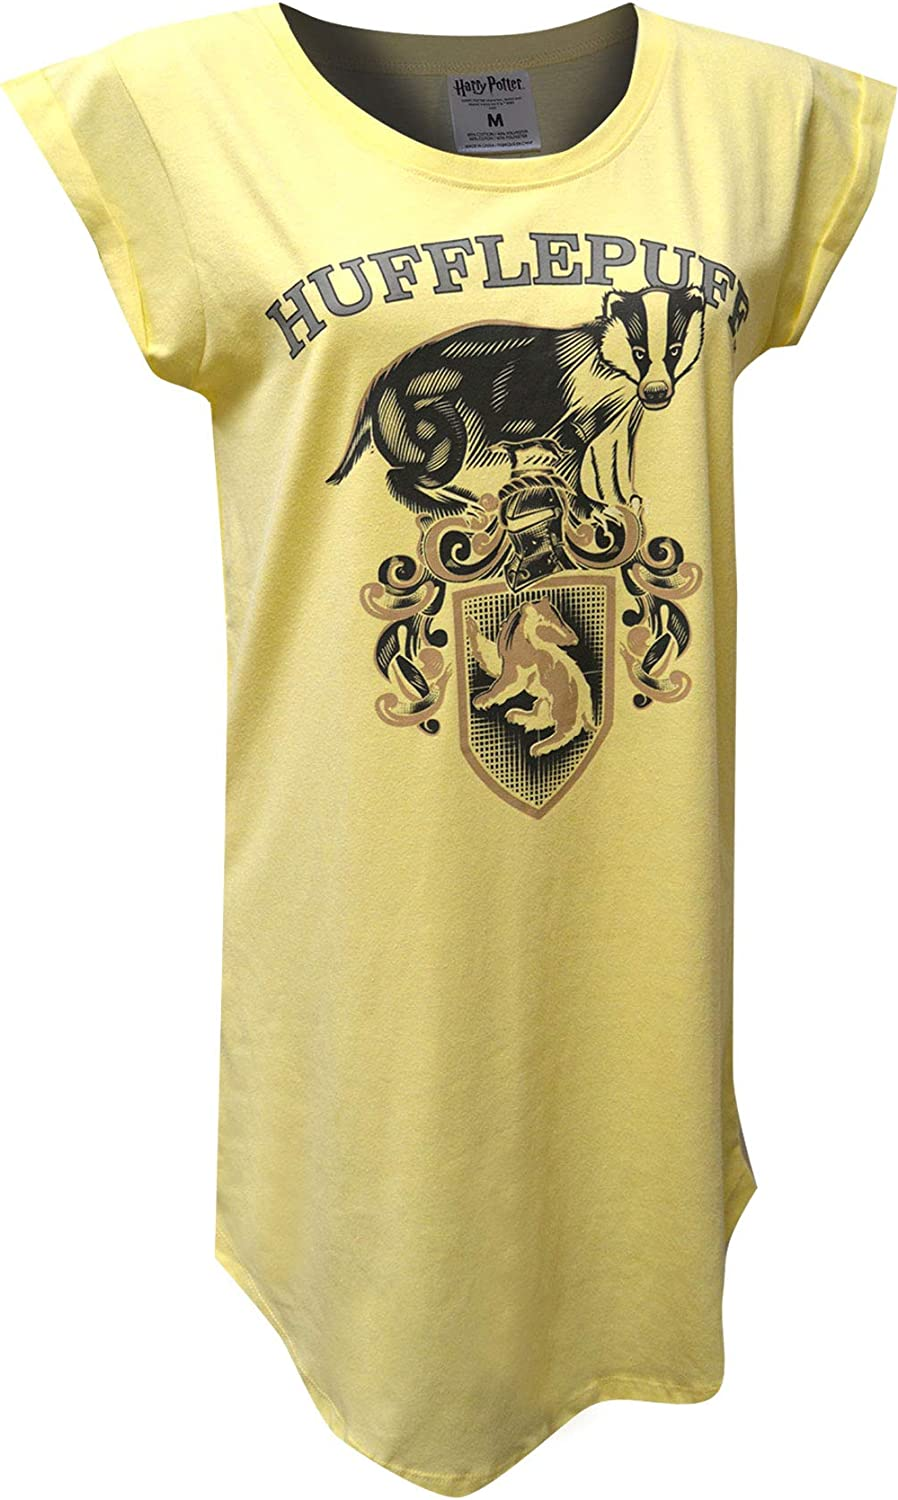 Harry Potter Women's Popular products Hufflepuff All items in the store House Mascot Ladies Nightshirt